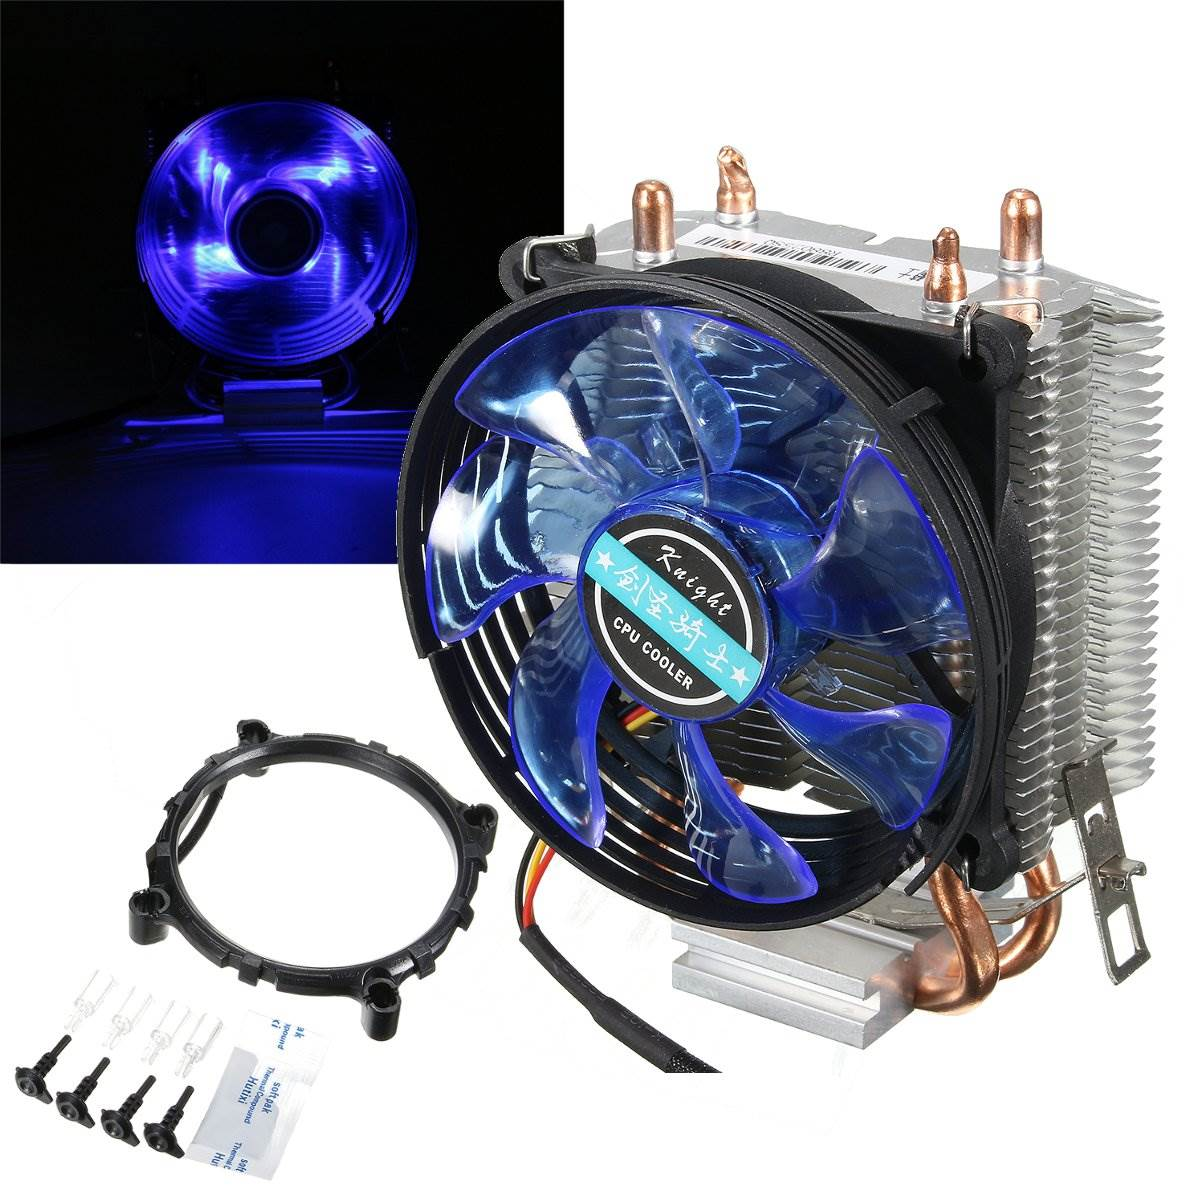 Newest 95x95x25mm LED Cooler Cpu Fan Heatsink Copper for Intel LGA775/1156/1155 for AMD AM2/AM2+/AM3 fast free ship for intel 1155 1156 1150 i3i5 cpu pure copper core radiator square cooling fin thickness 35mm cooler heatsink